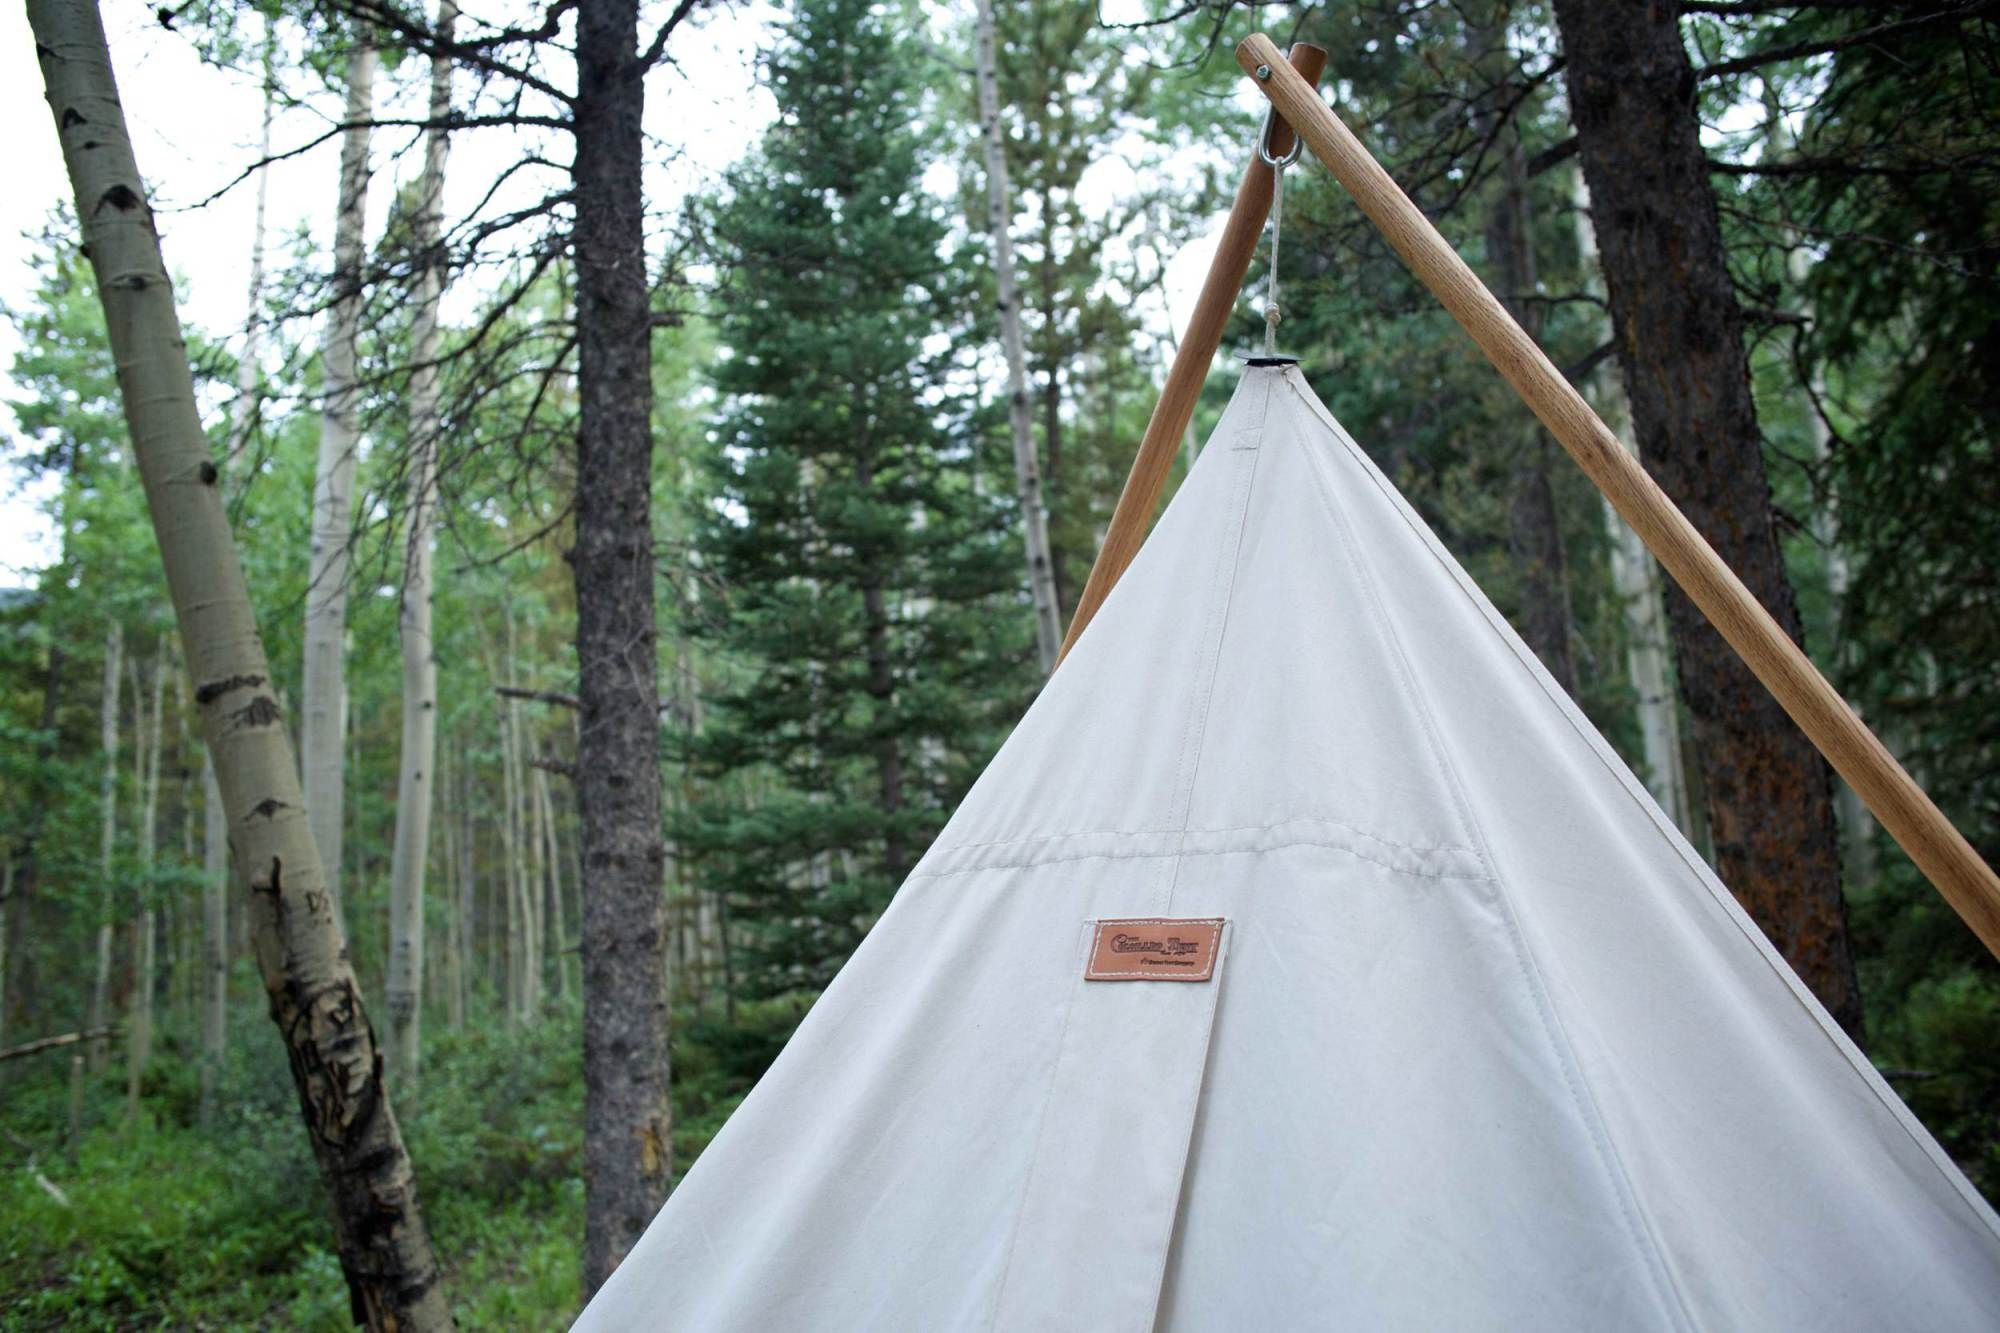 Denver Tent Creates A Healing Home In The Wilderness | Wilderness Tents and Denver & Denver Tent Creates A Healing Home In The Wilderness | Wilderness ...